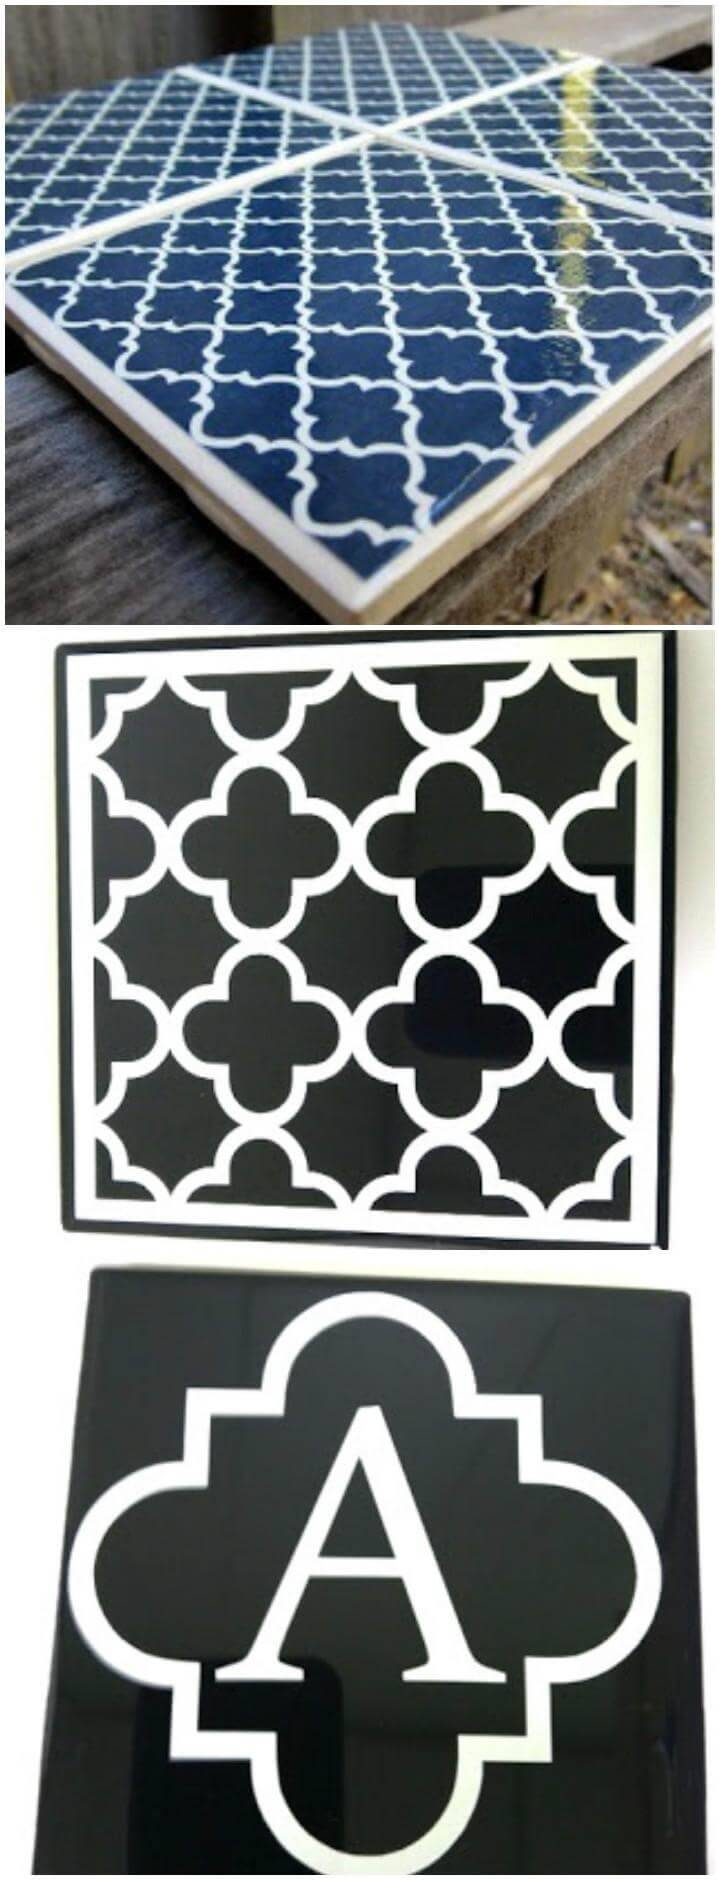 50 Diy Vinyl Projects For Your Next Home Improvement Project Diy Crafts